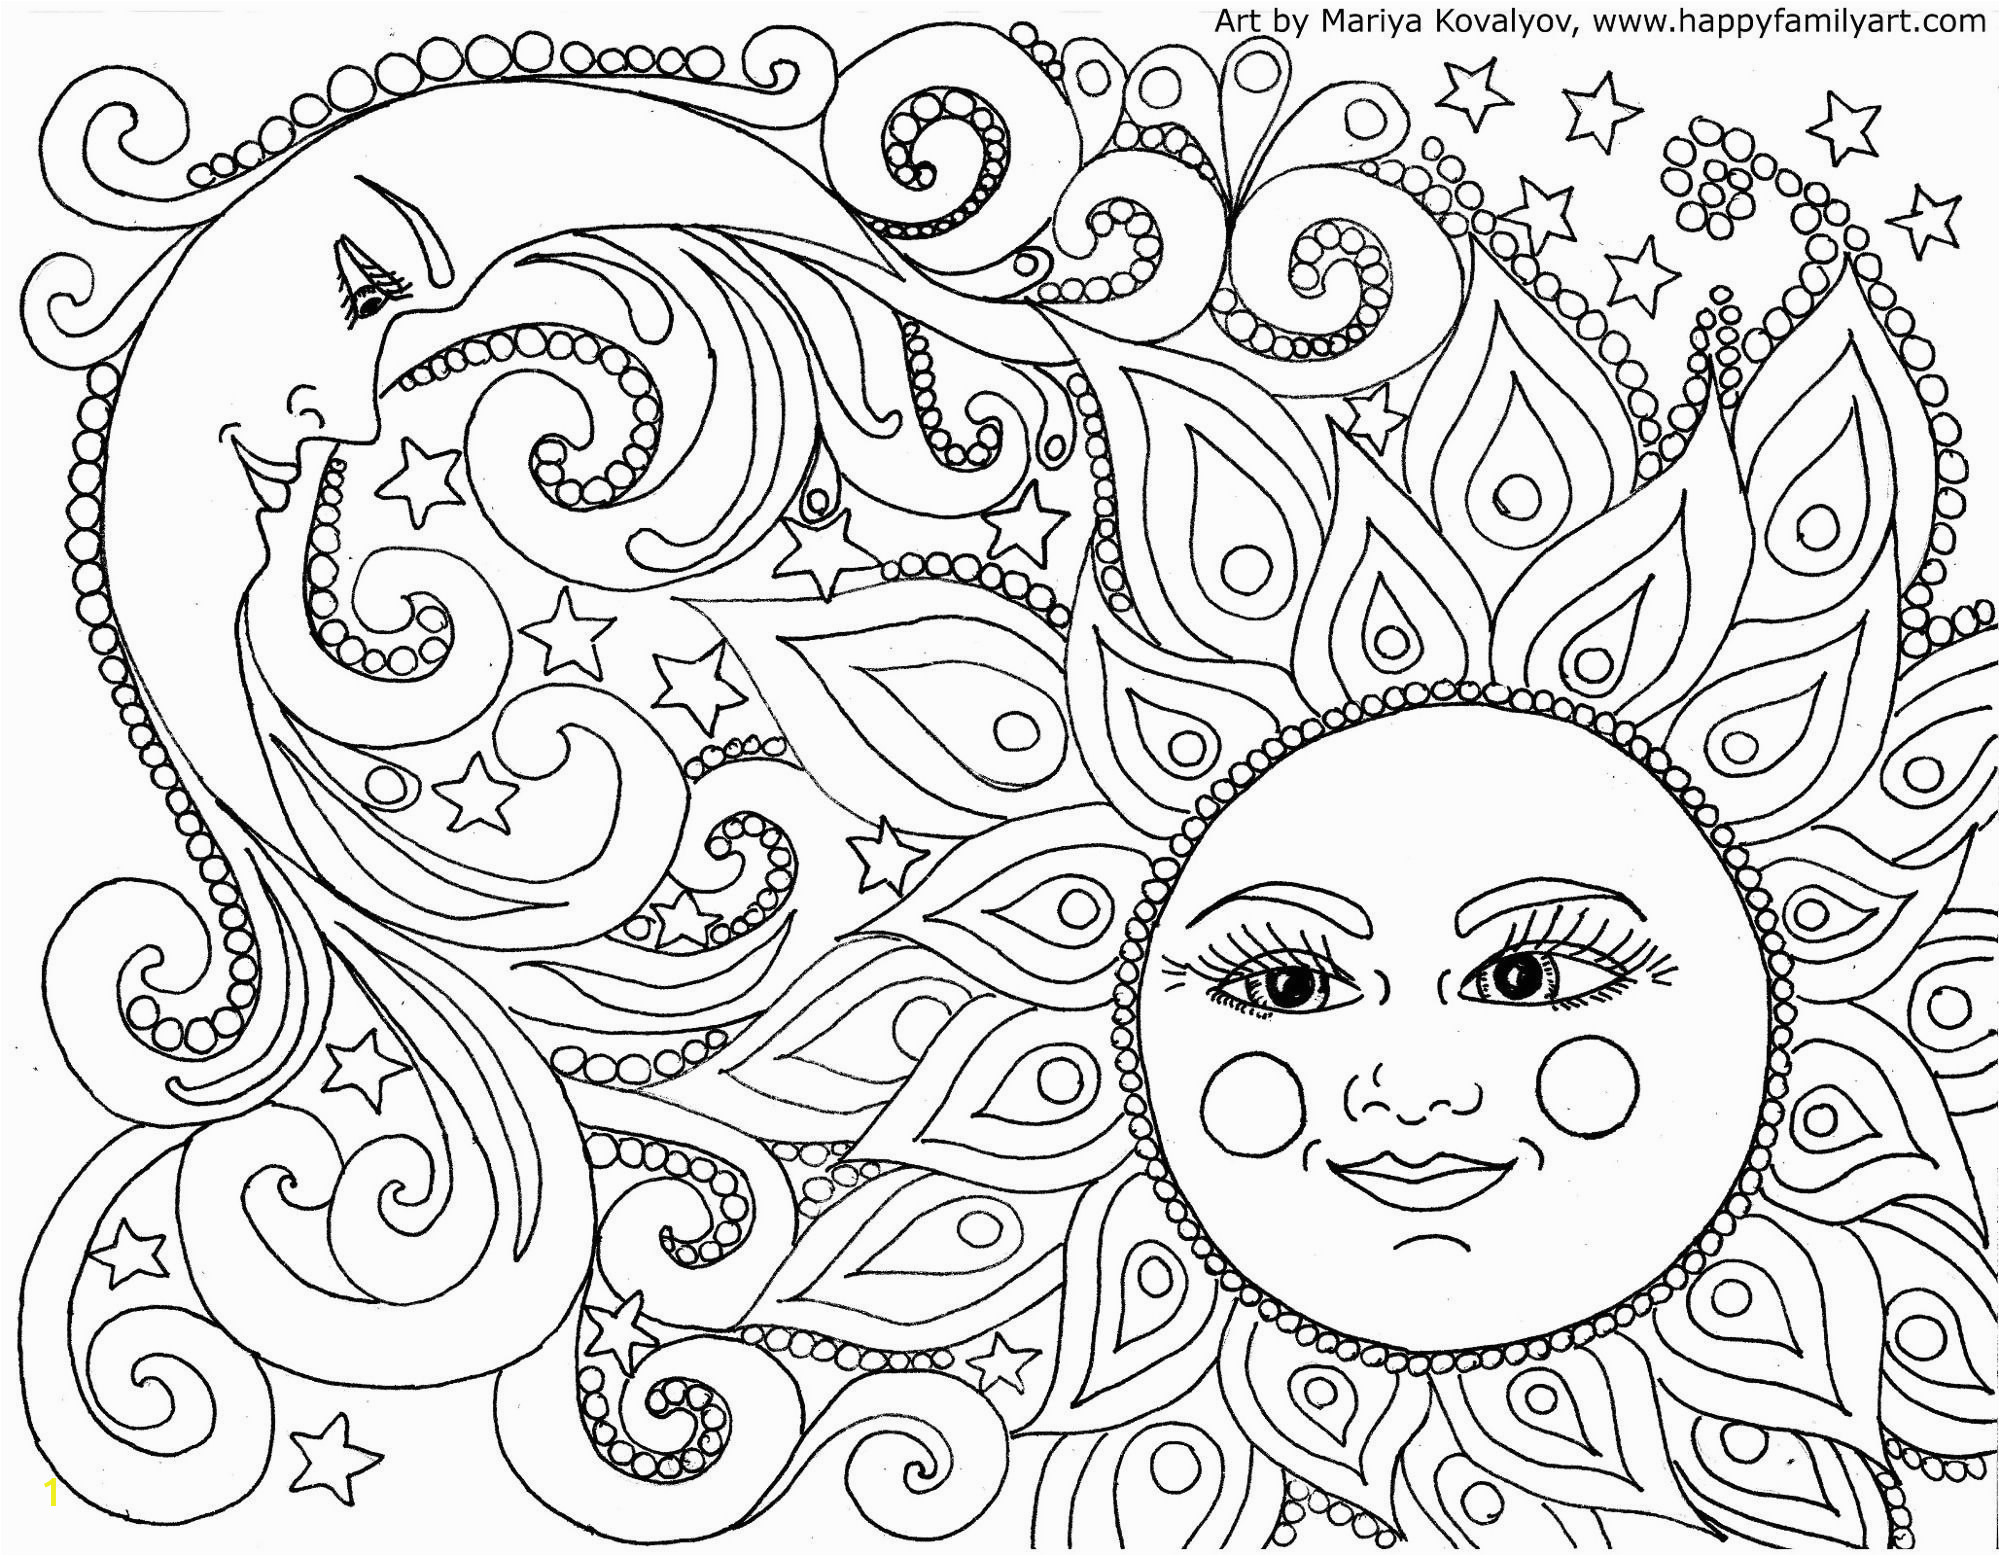 Printable Coloring Books for Adults Awesome Cute Printable Coloring